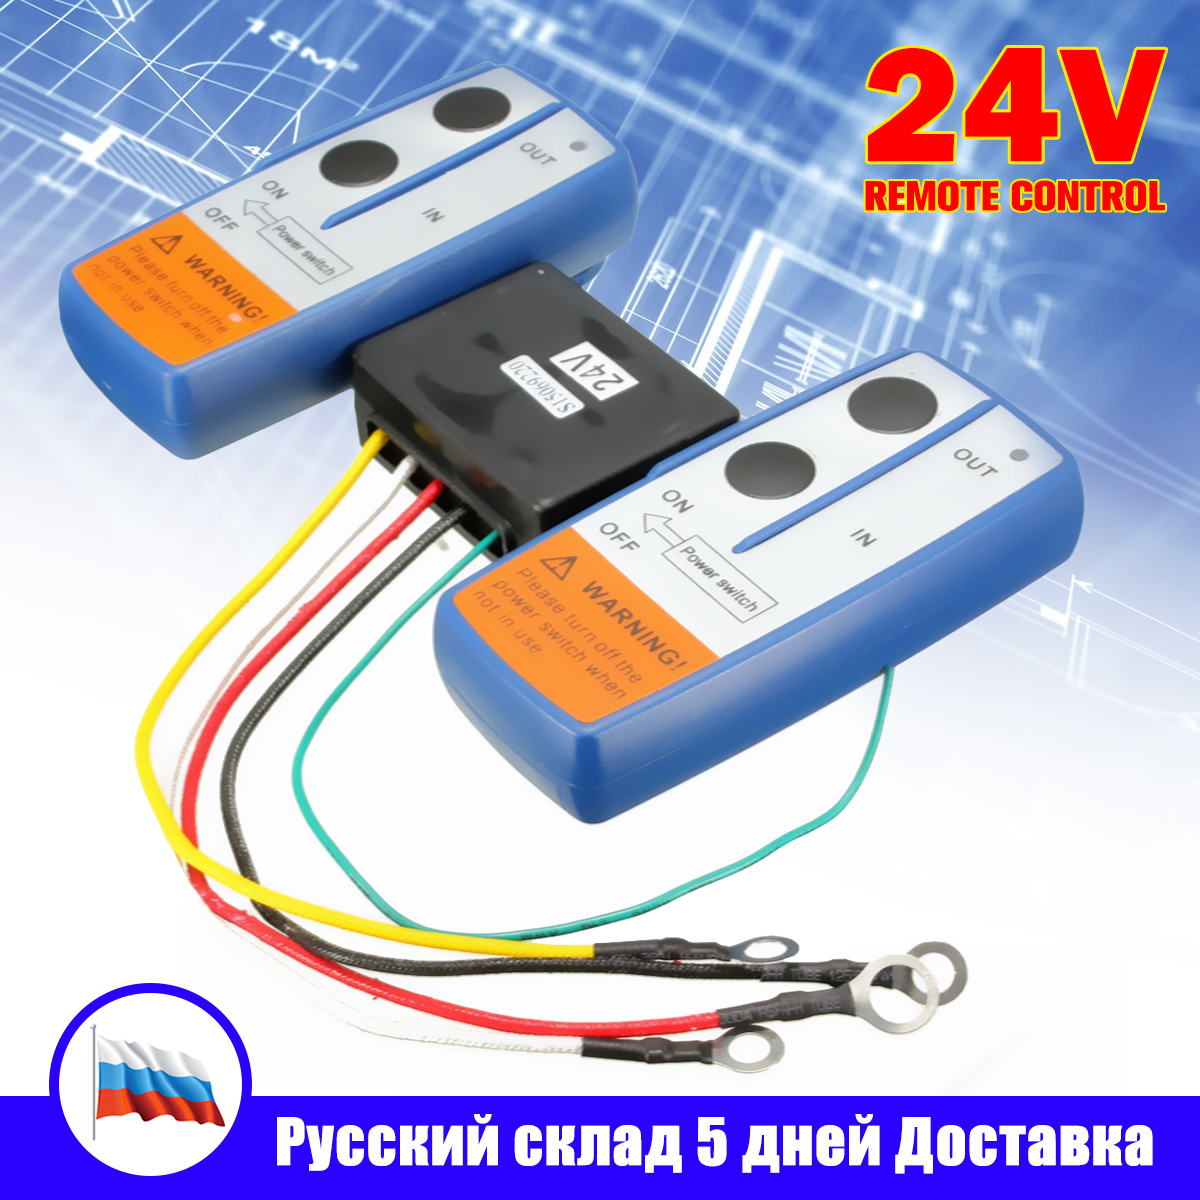 Universal 24V 98 feet/ 30m Car Wireless Winch Crane Remote Control Controller With Twin Handset Remote Range blue color